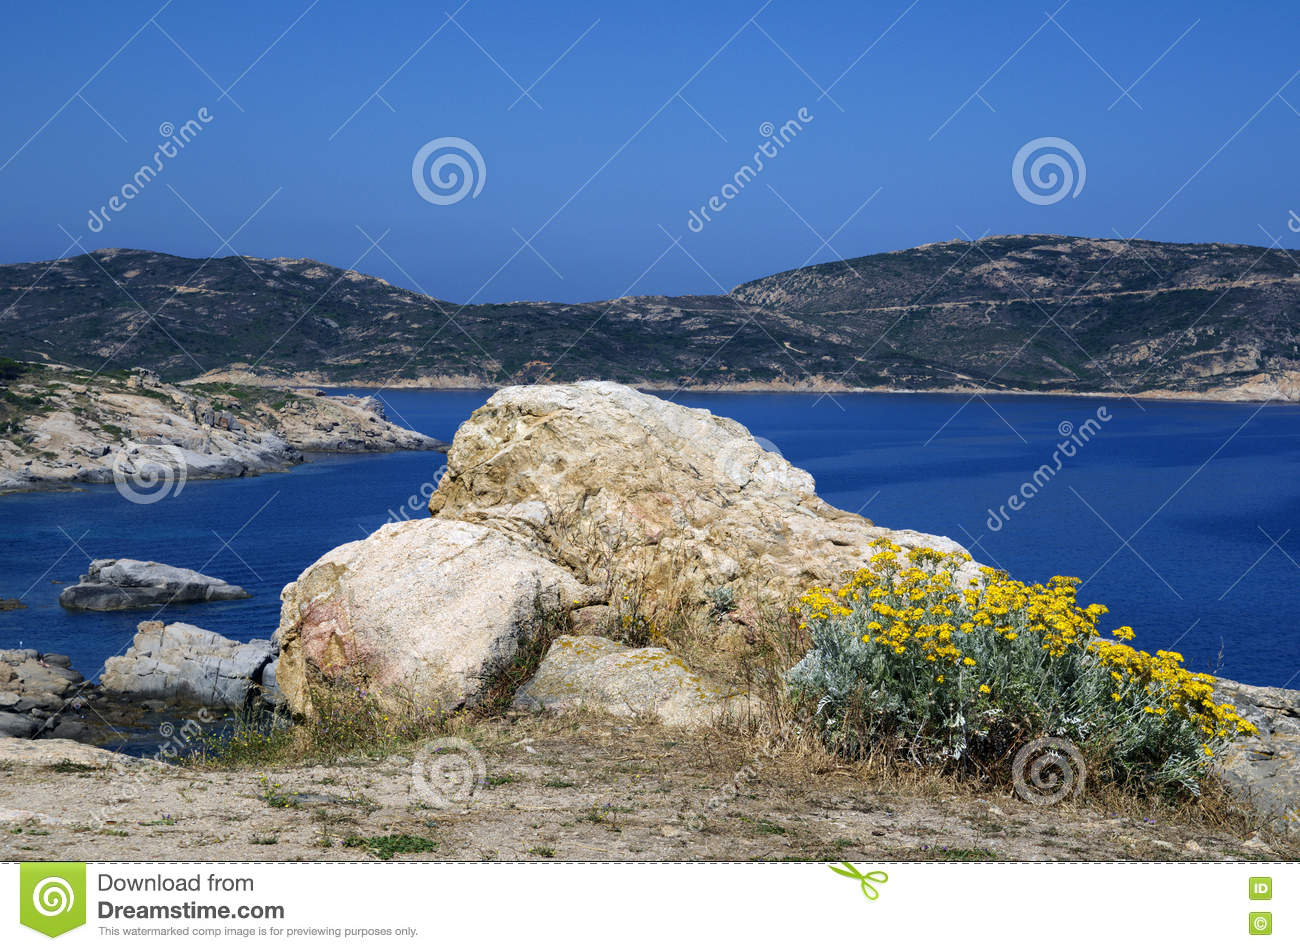 Big White Rock And Yellow Flowers Face To Mediterranean Sea And